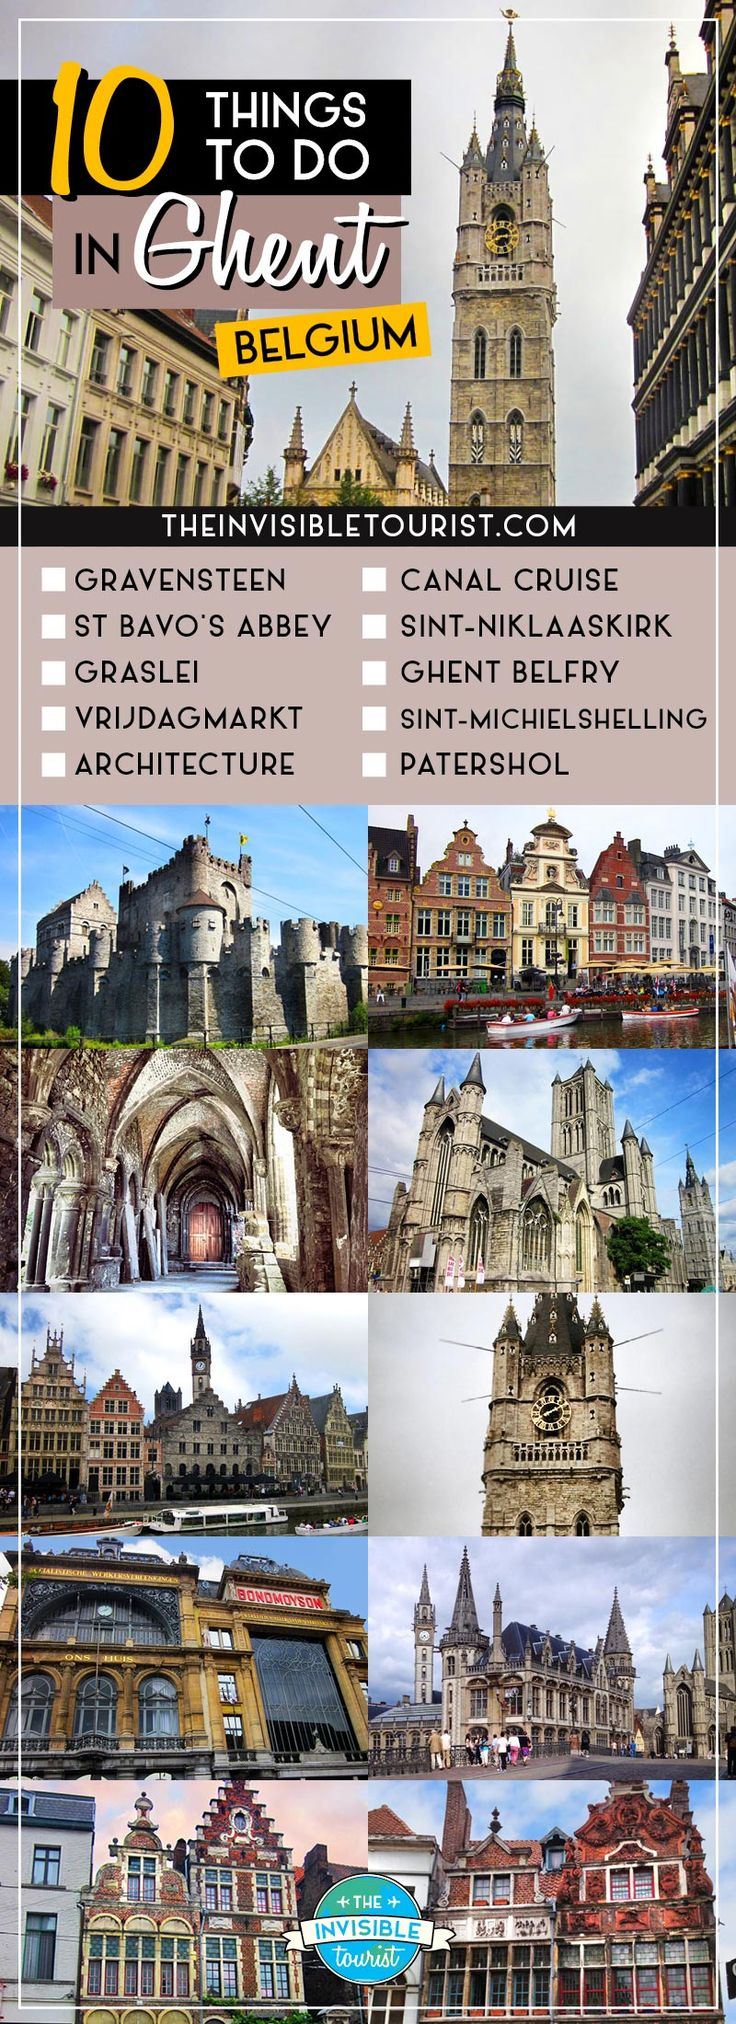 10 Things to Do in Ghent, Belgium • Checklist   The Invisible Tourist